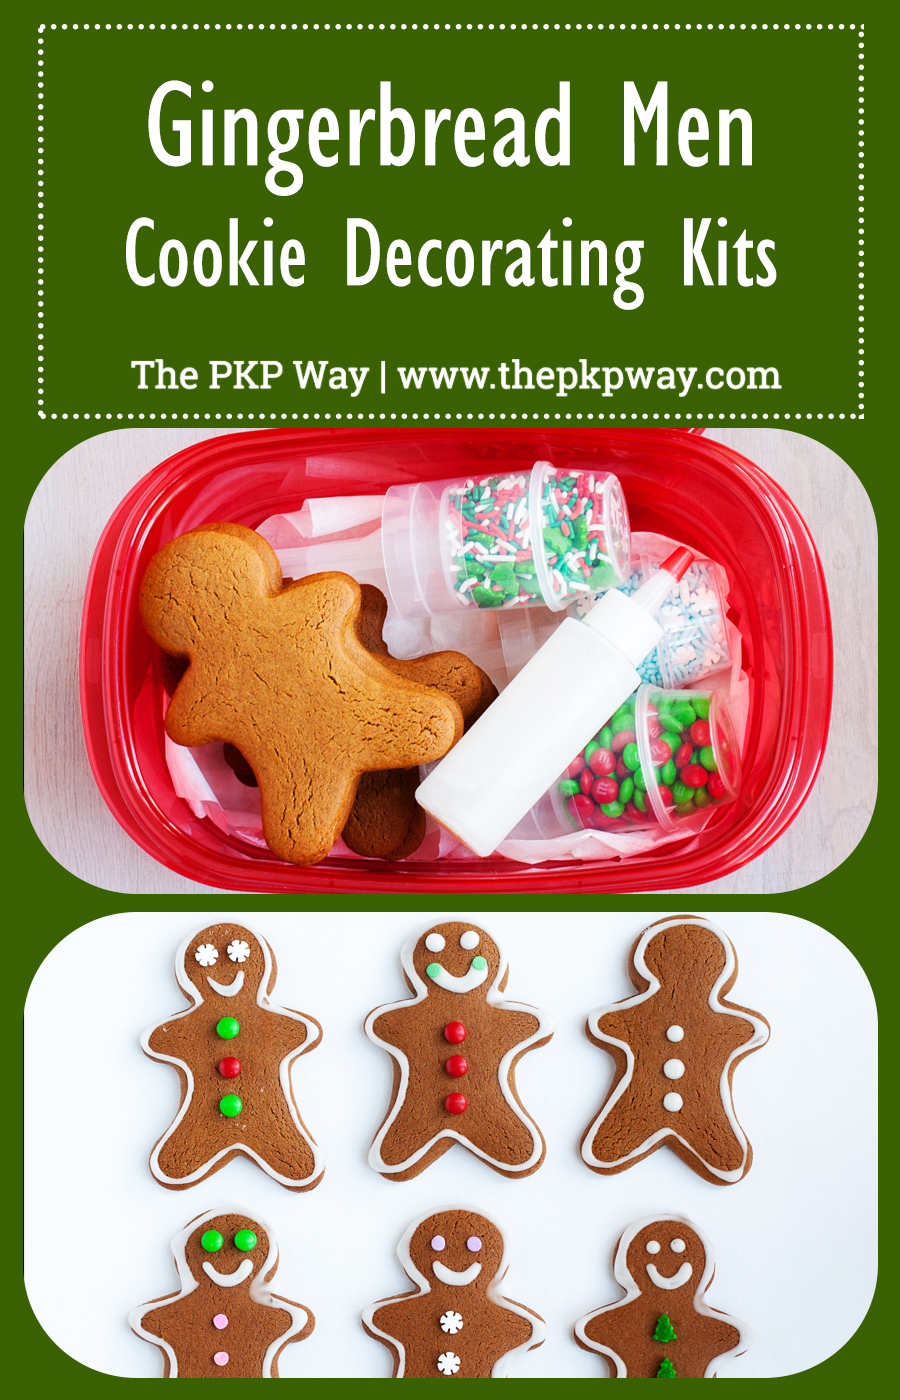 Christmas Cookie Decorating Kit.Gingerbread Men Cookie Decorating Kits The Pkp Way